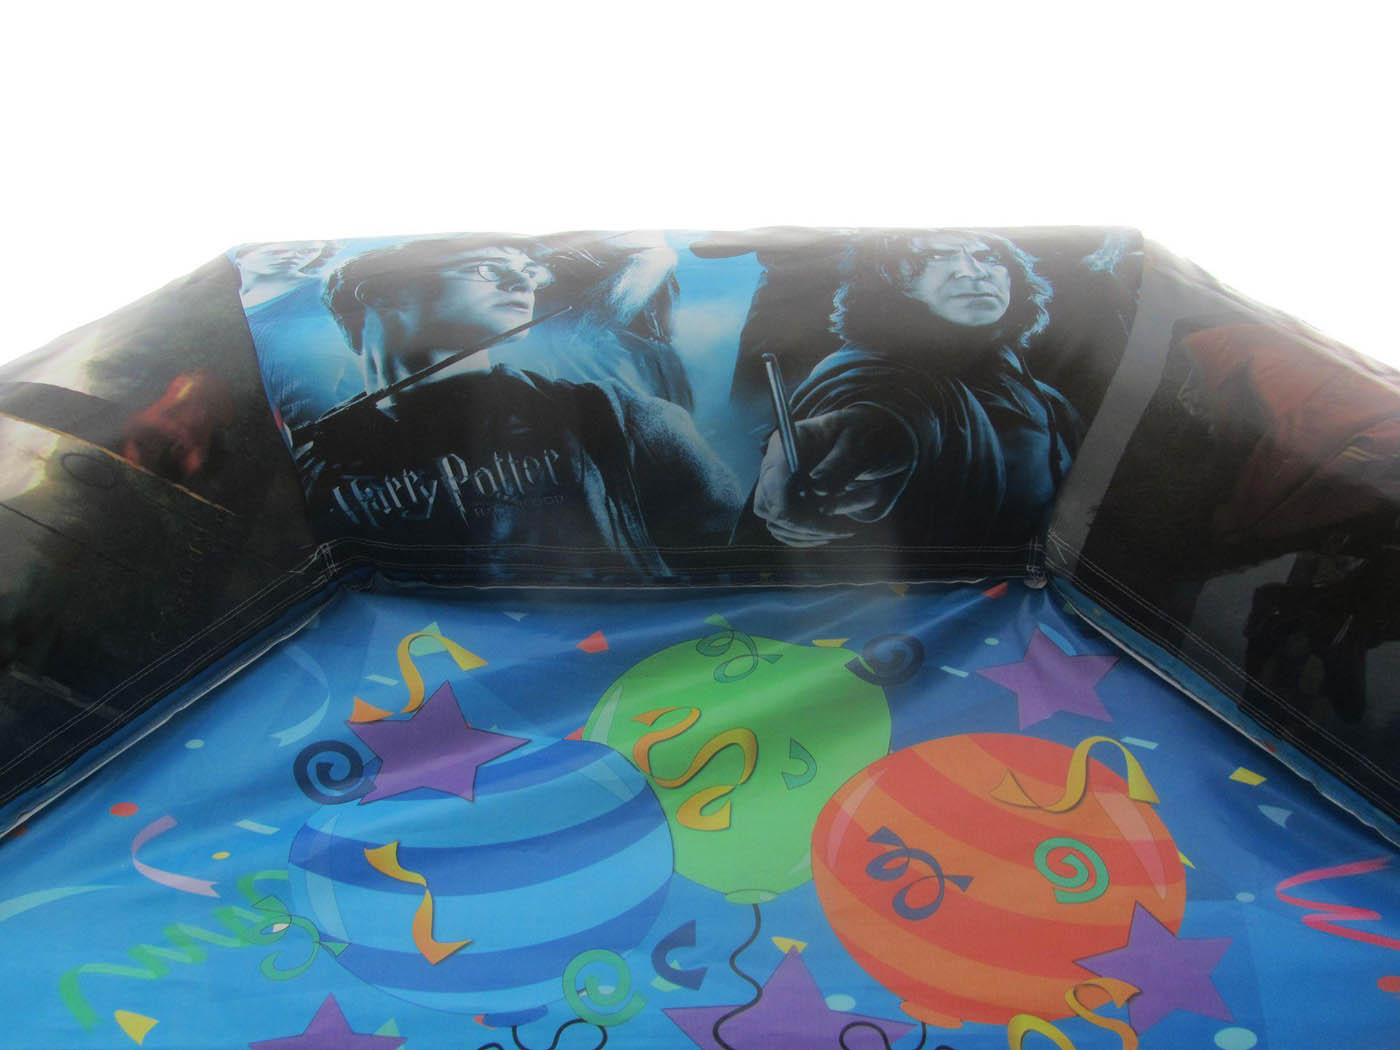 Harry-potter-bouncy-castle-velcro-artwork-arches-compressor